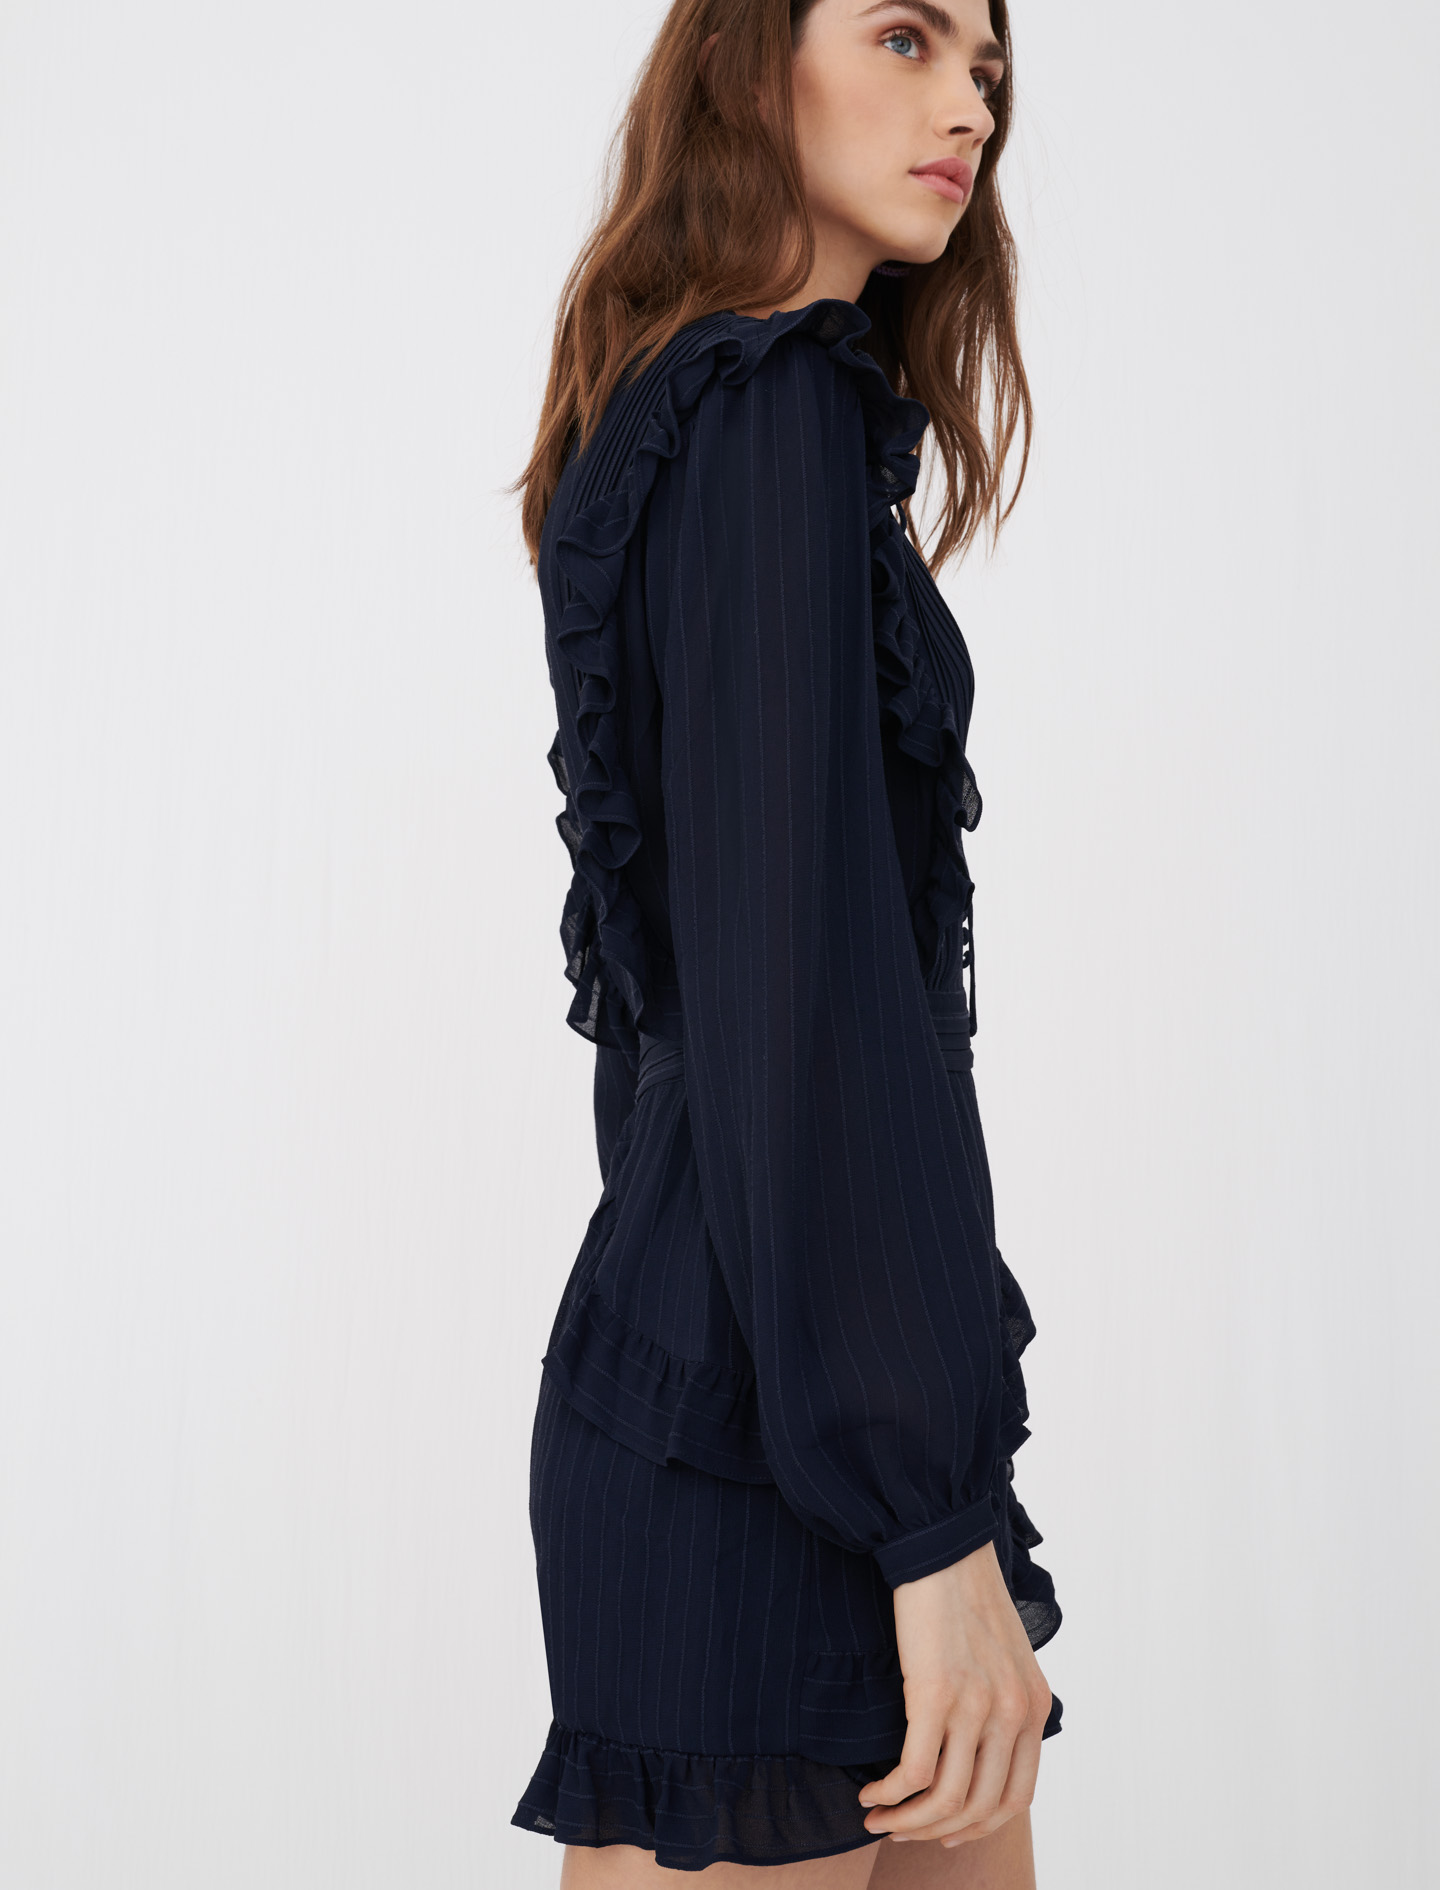 Maje Istra Playsuit with long sleeves and ruffles in navy